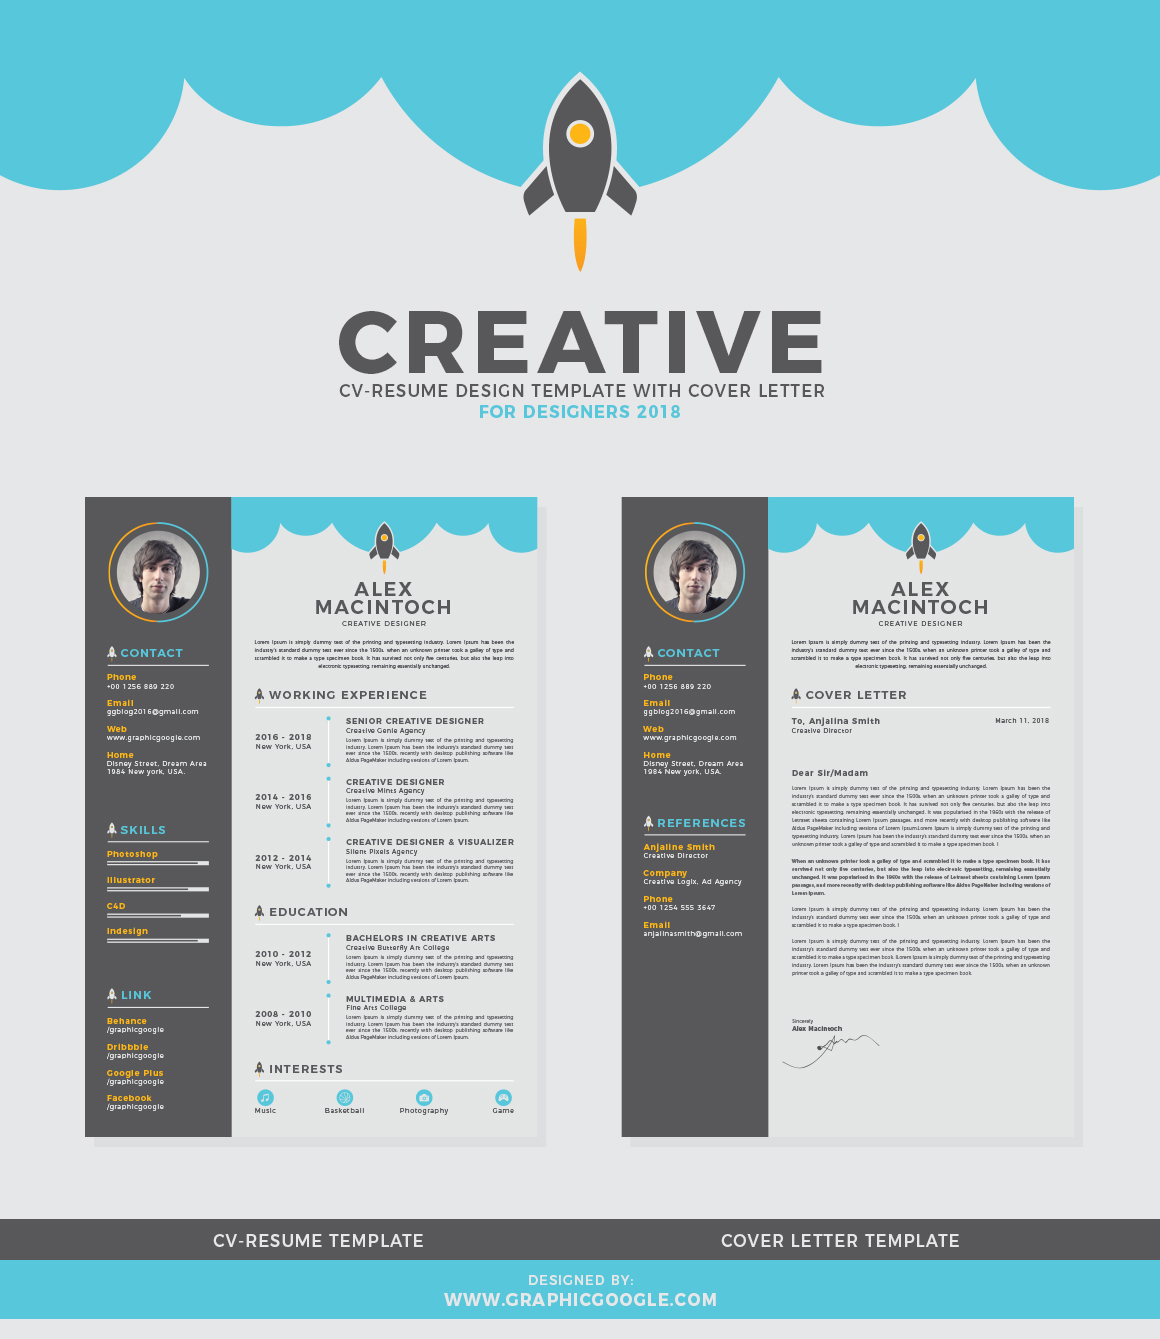 free creative cv resume design template with cover letter for designers 2018graphic Resume Unique Resume Cover Letter